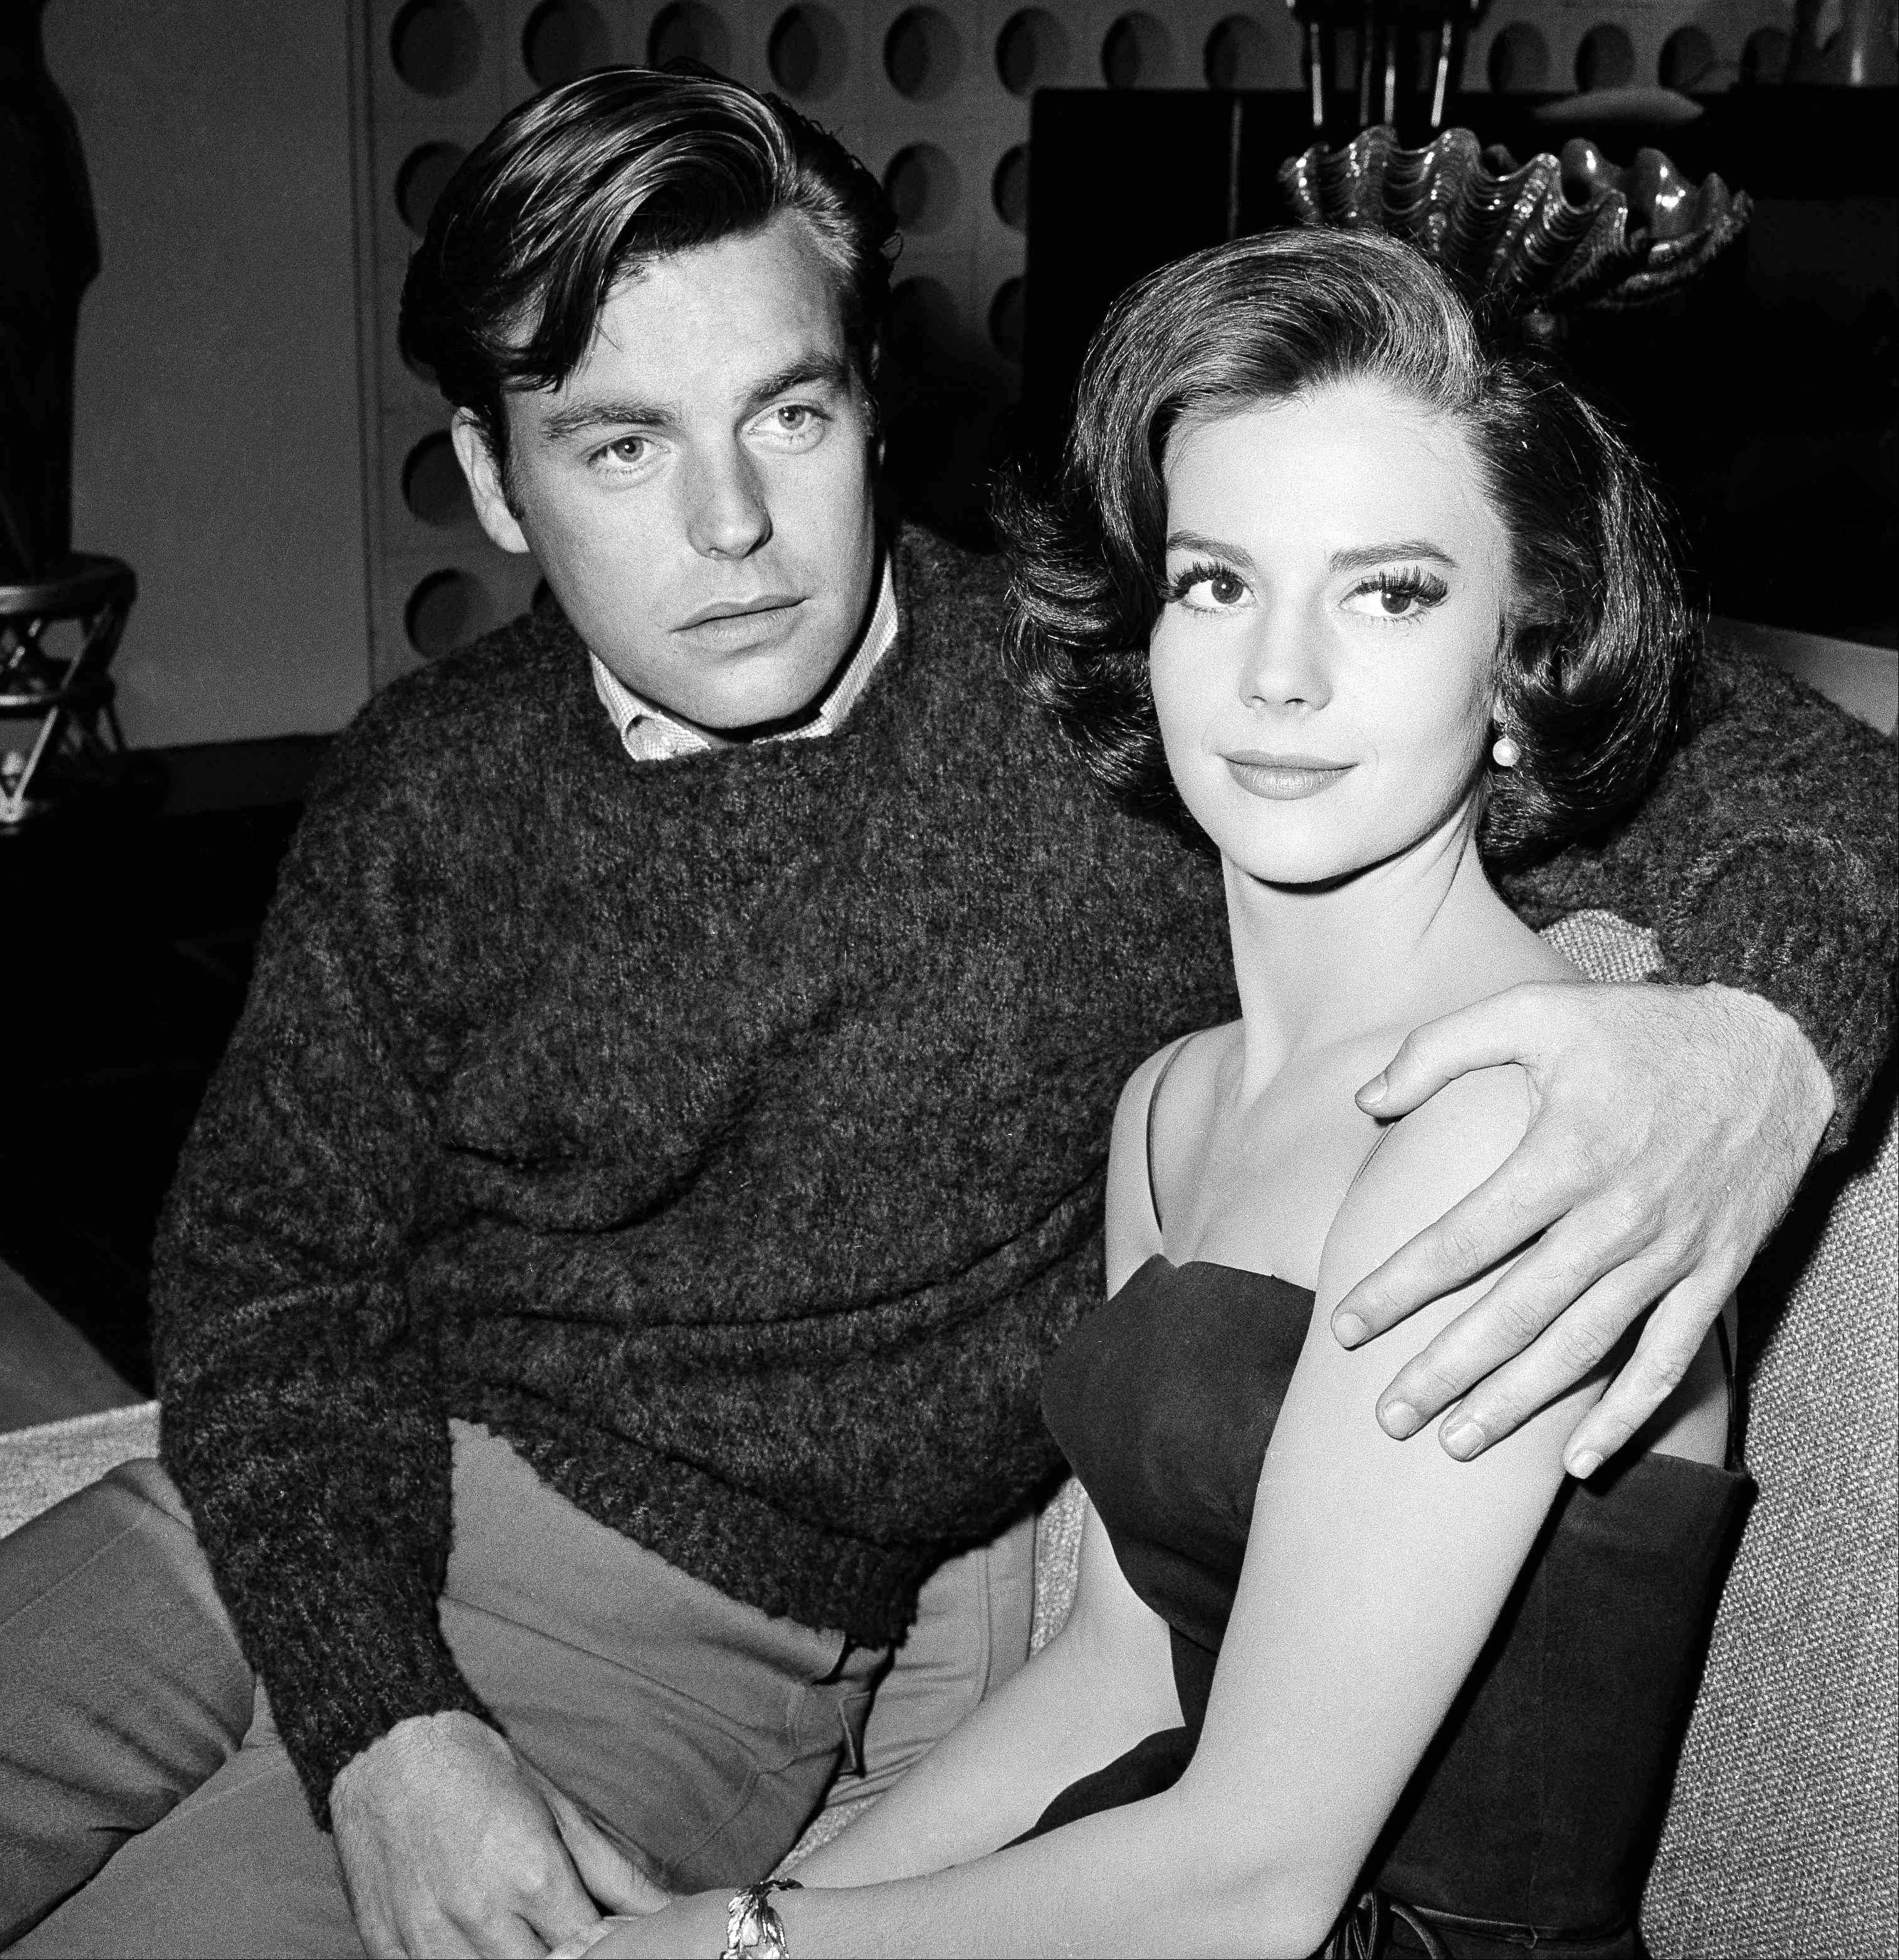 "In a Nov. 25, 1959, file photo, Natalie Wood and her husband, Robert Wagner, are made up for their roles in ""All The Fine Young Cannibals,"" in Los Angeles. Dennis Davern, captain of the yacht Splendour, which Wood was aboard at the time of her death, said on national TV on Friday that he lied to investigators about Natalie Wood's mysterious death 30 years ago and blames the actress' husband at the time, Robert Wagner, for her drowning in the ocean off Southern California."